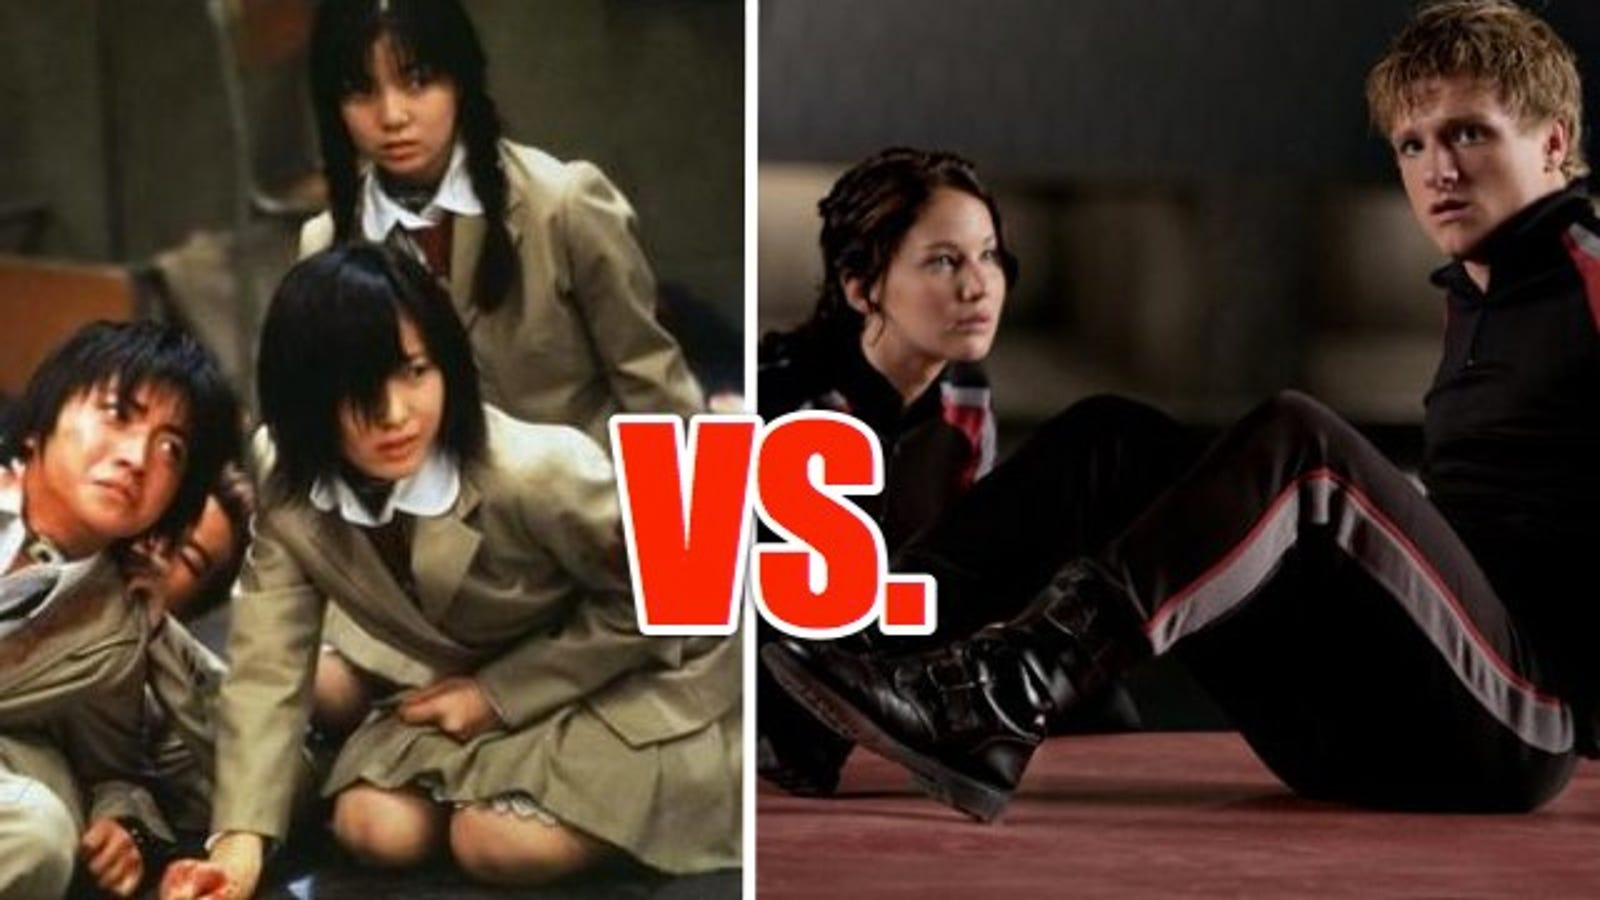 Did The Hunger Games really rip off Battle Royale?